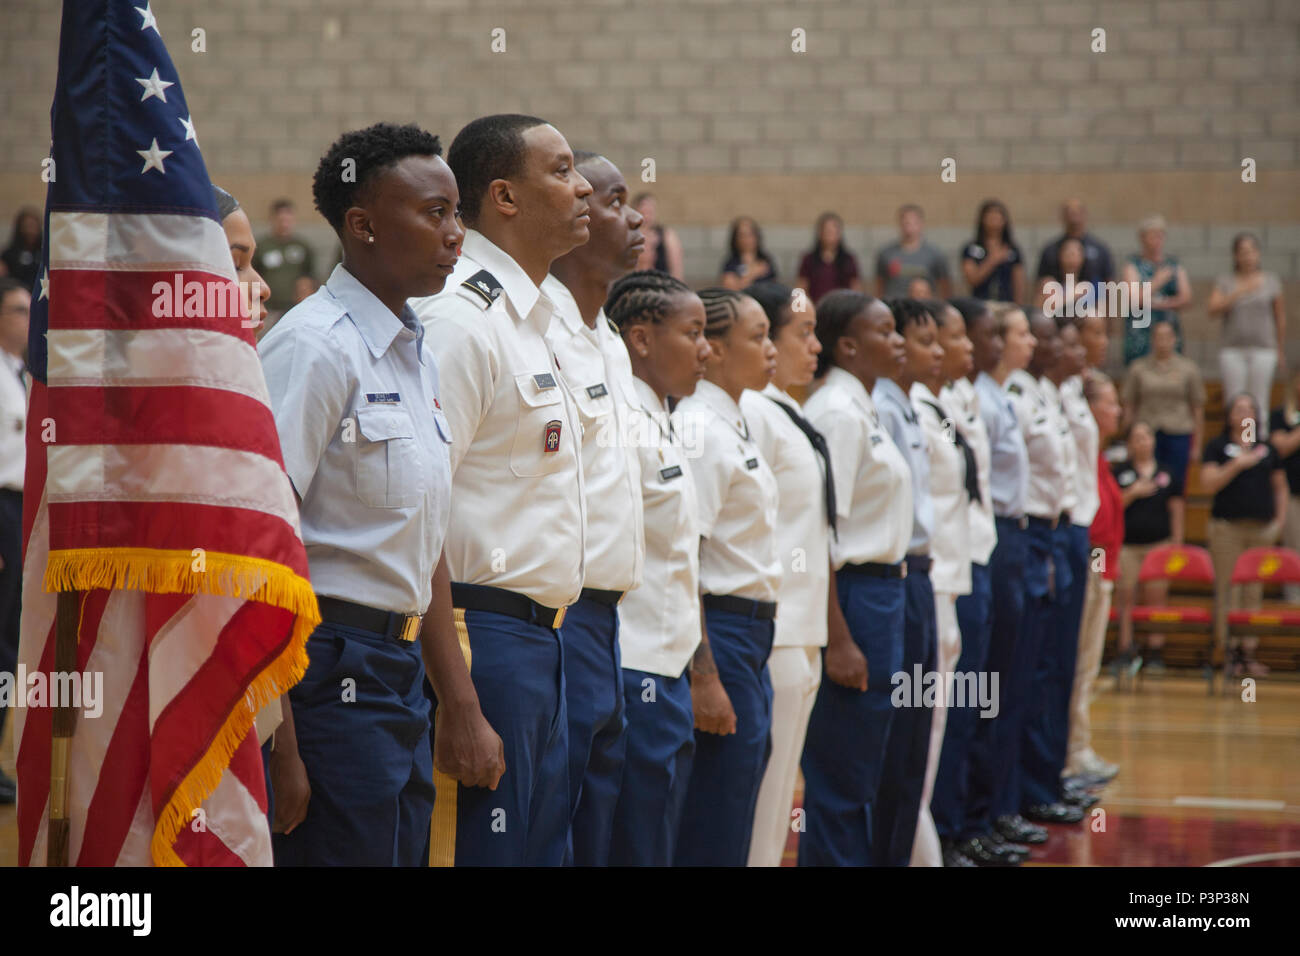 The team representing the United States in the World Military Women's Basketball Championship stand at attention during the National Anthem at the 2016 Conseil International Du Sport Militaire (CISM) opening ceremony on Camp Pendleton, Calif., July 25, 2016. CISM championships are hosted around the world and provide an avenue for the United States to project the positive image with valuable military-to-military engagement through sports. (U.S. Marine Corps photo by Cpl. Tyler S. Dietrich) - Stock Image